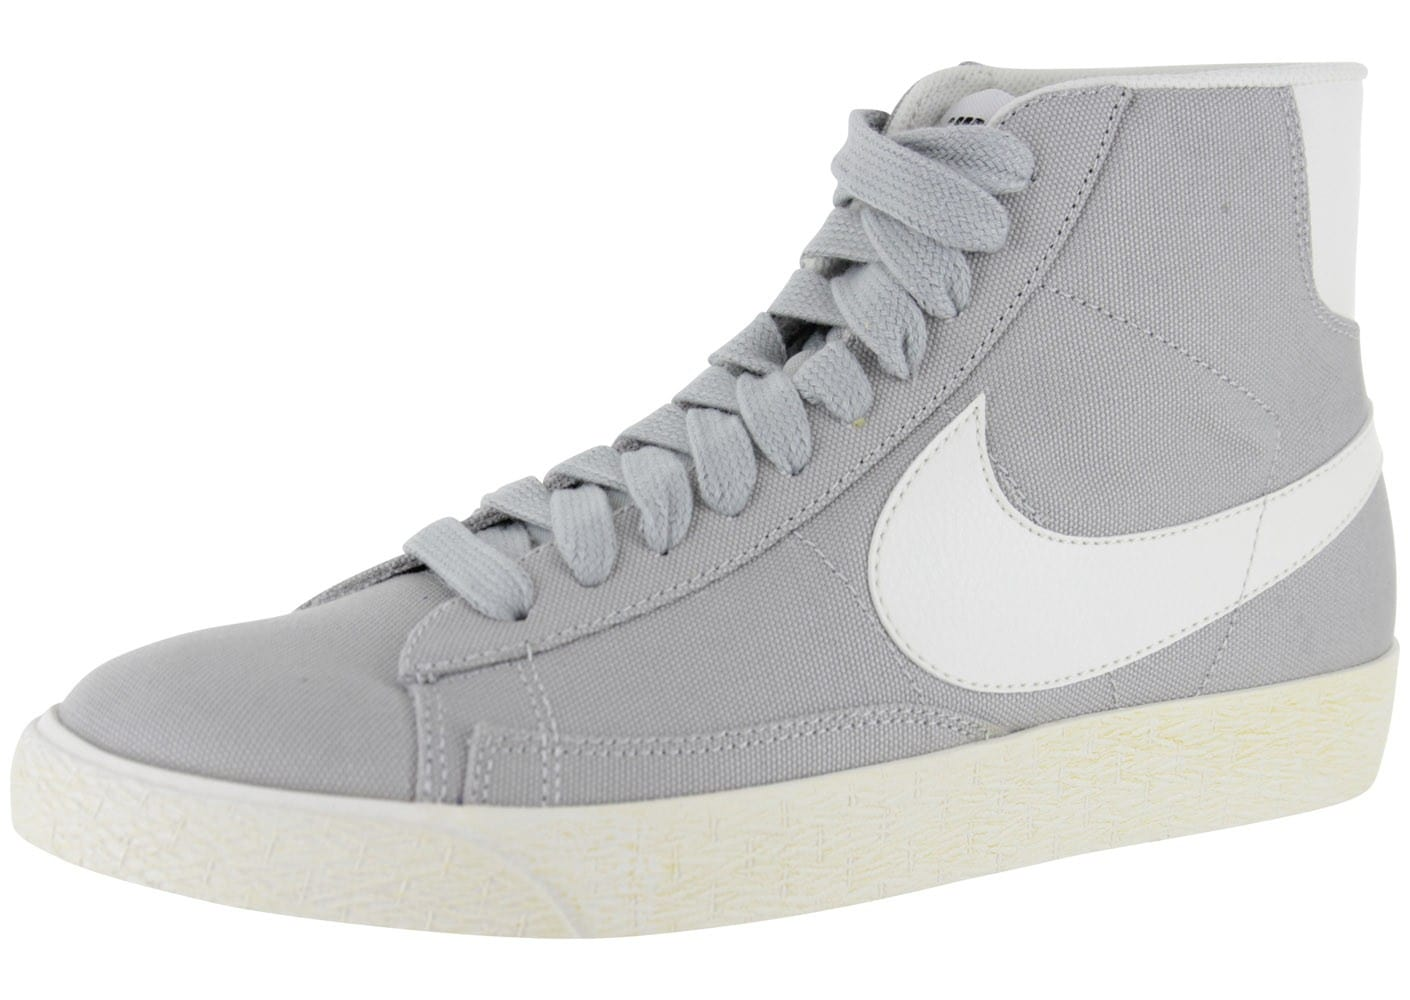 nike blazer mid toile grise chaussures homme chausport. Black Bedroom Furniture Sets. Home Design Ideas